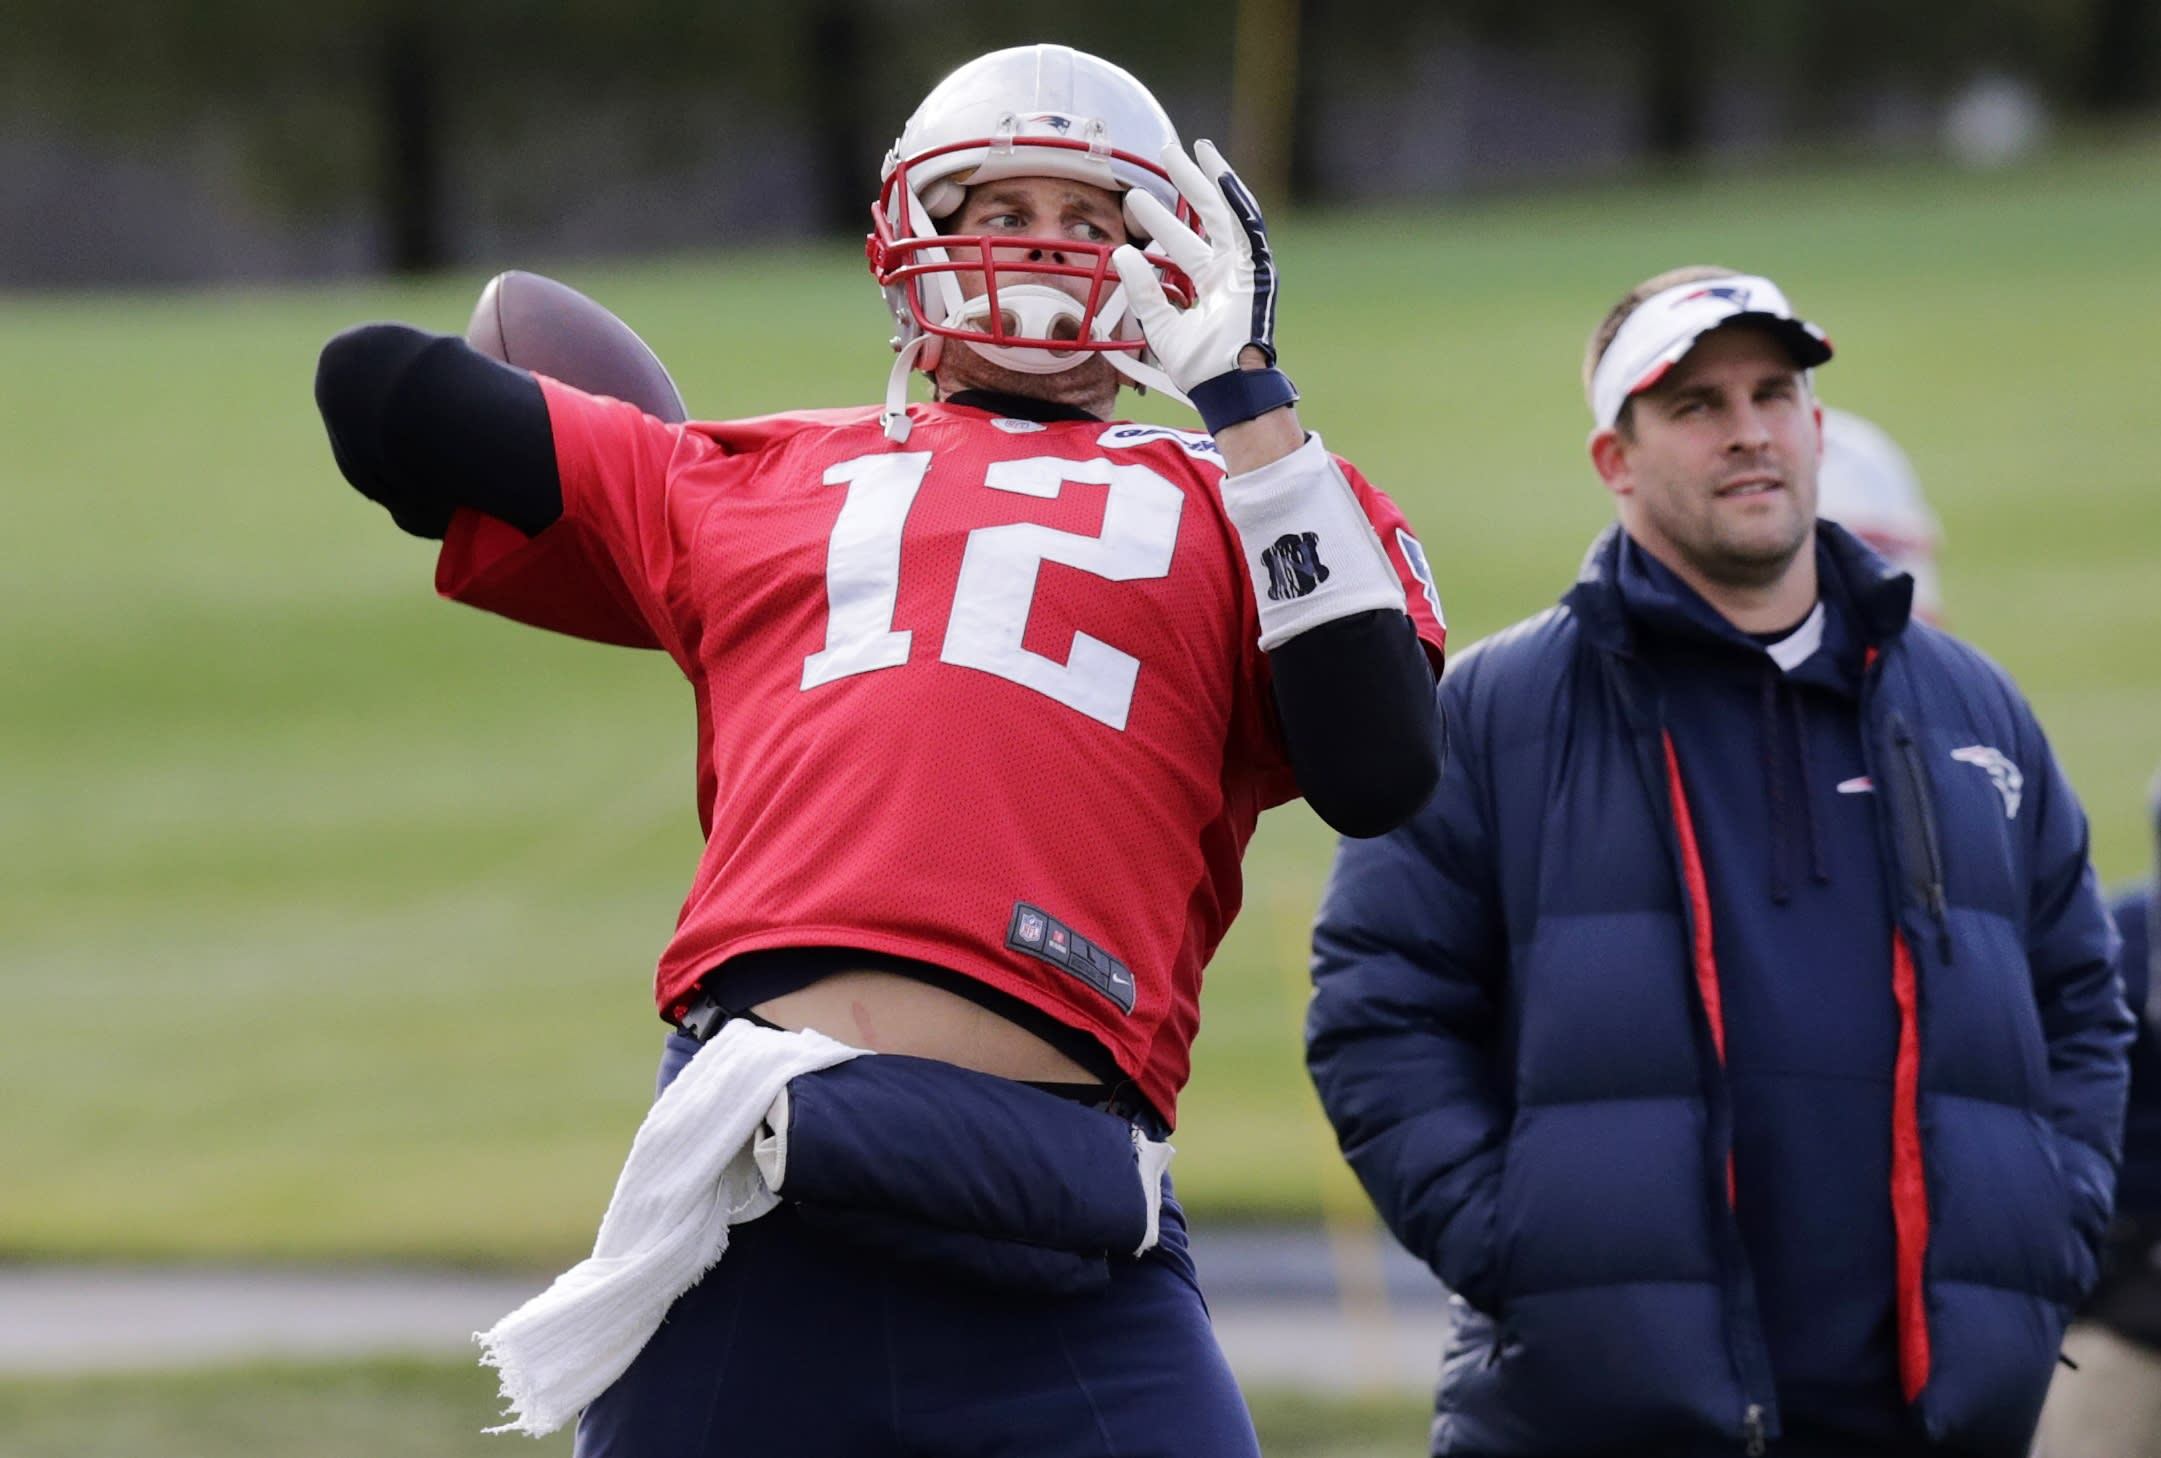 Patriots expect tough game against Jets, really